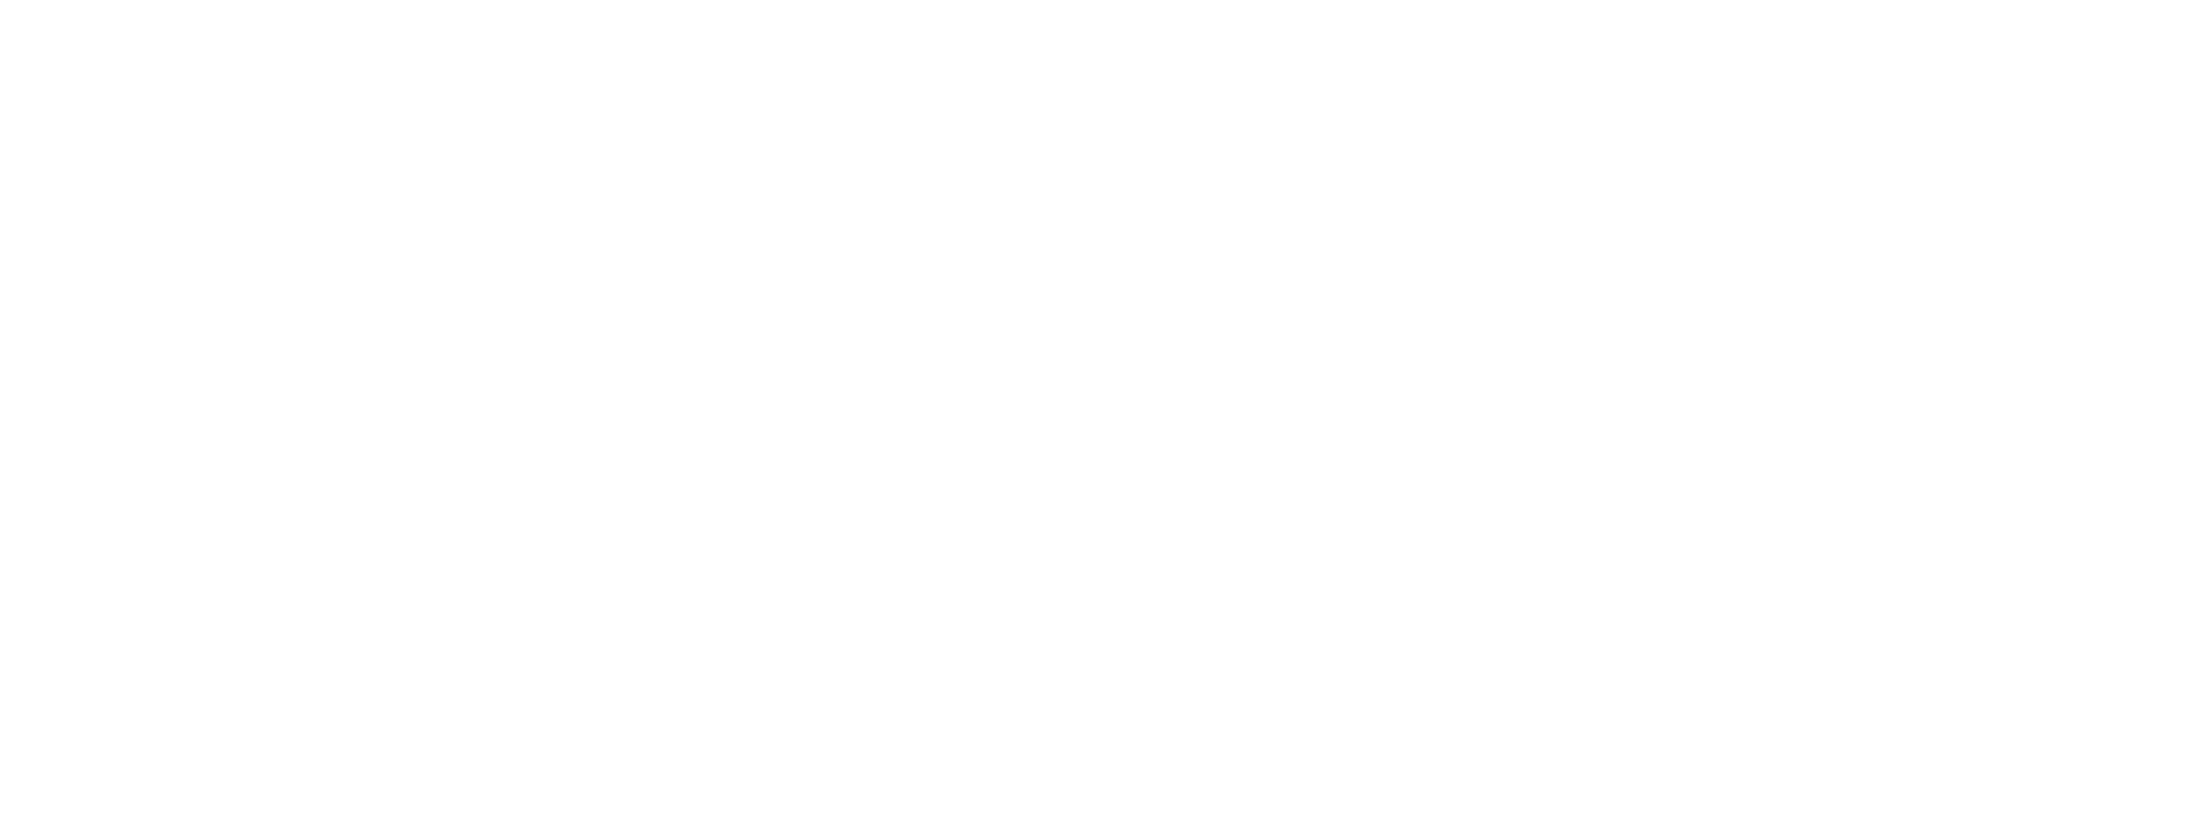 The Visionary Group Logo